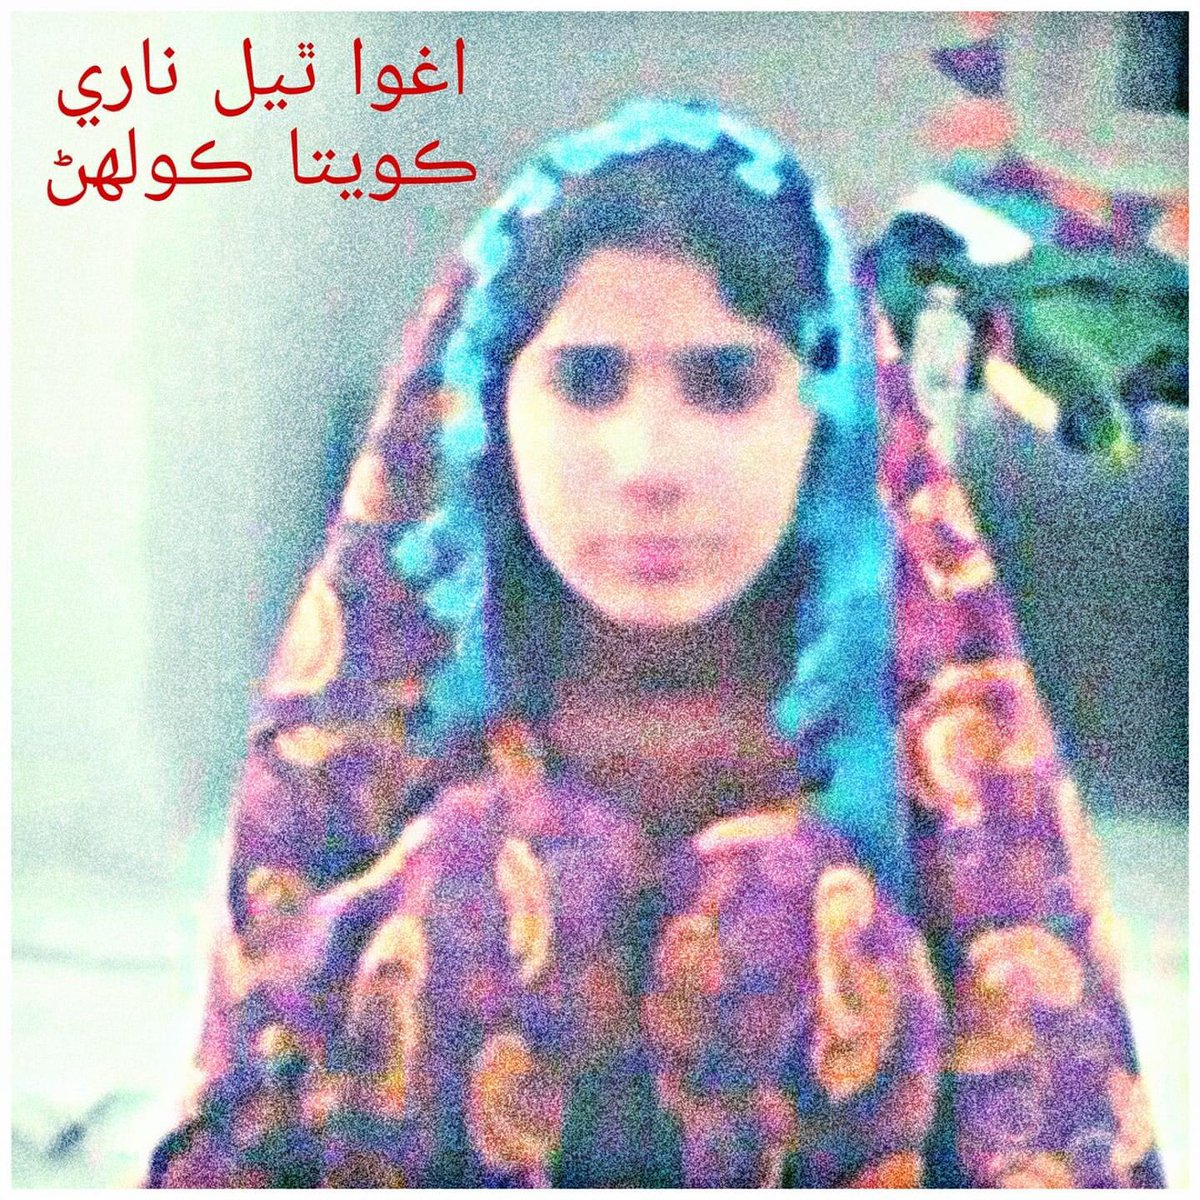 Badin:Kavita,married Hindu girl abuducted from her home by 4 armed men.Kavita & her mother were beaten by abductors,family is afraid culprits will rape & murder her.  complaint filed in PS Pangrio agnst Chdhry Adil S/o Aslam, still police is not taking any actions @sindhpolicedmc https://t.co/rCuNCZ5vDw